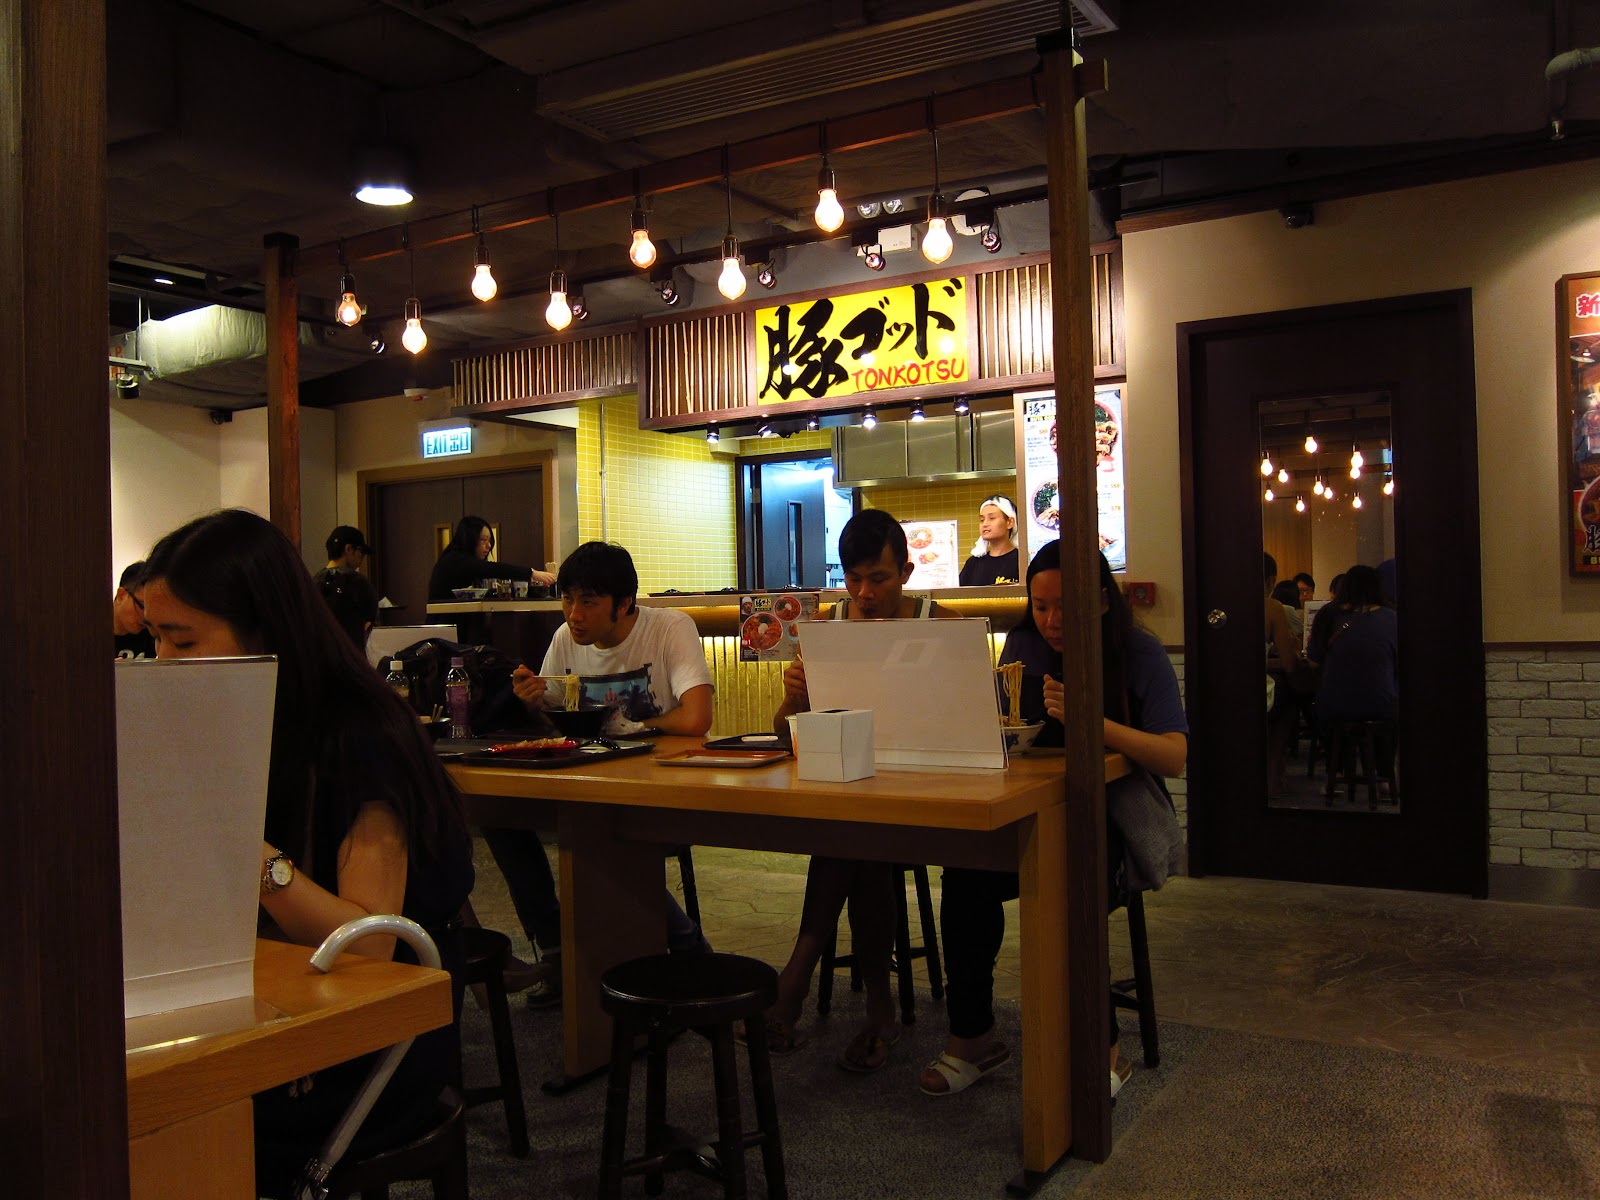 Megabox Food Court